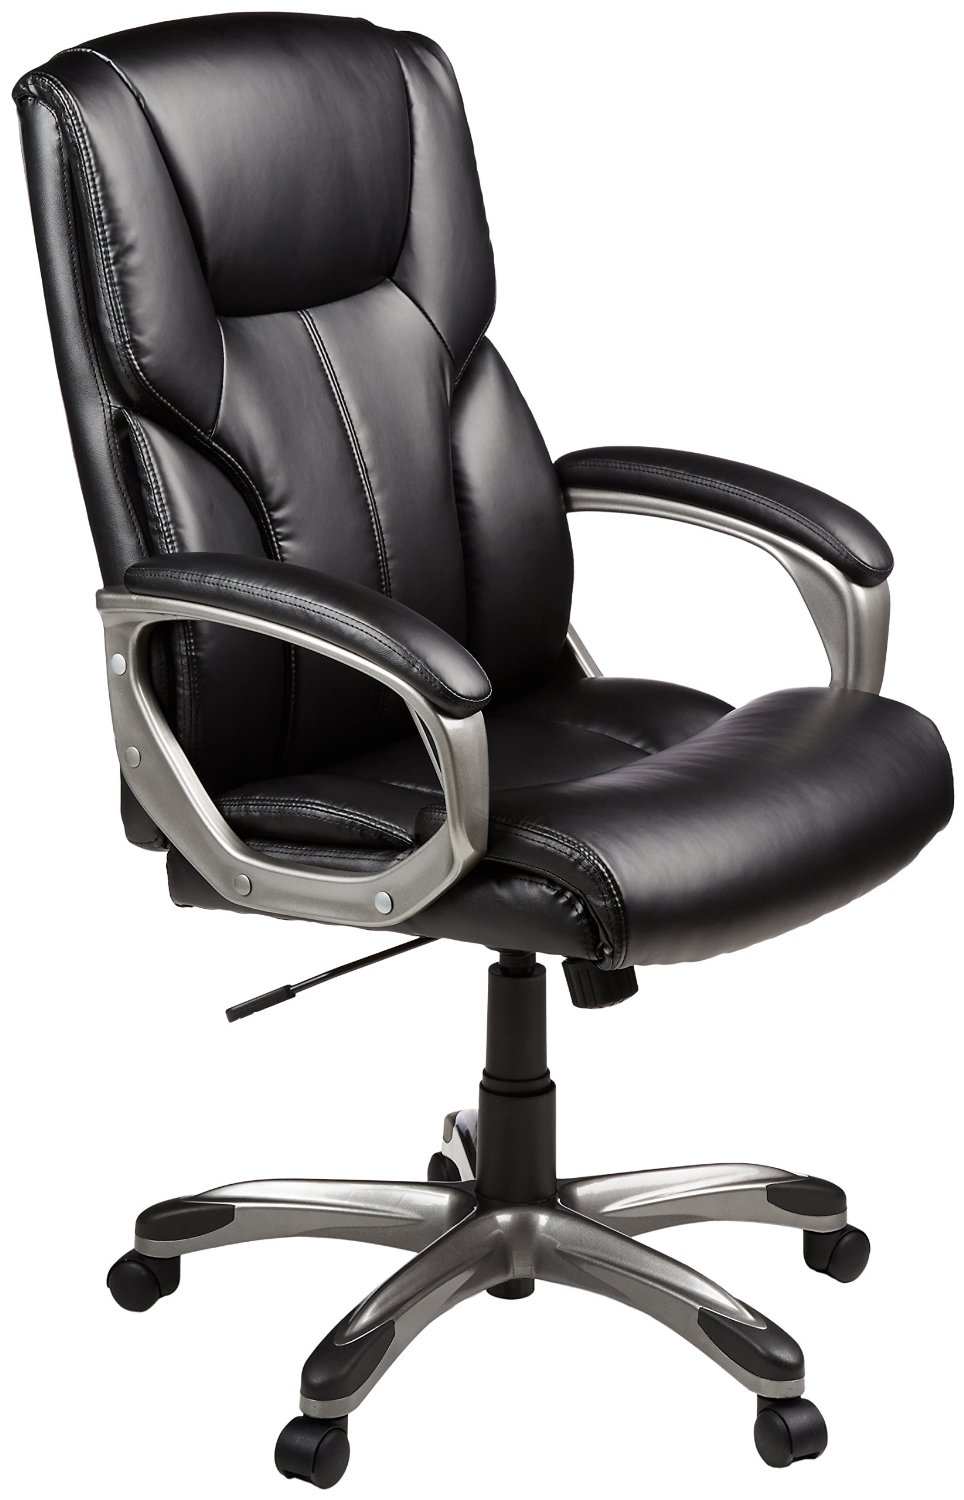 Lovely If You Are Looking For A Cheap Executive Chair With Good Quality, This Chair  From Amazonu0027s Brand May Be The Right One For You. It Is Characterized By A  Very ...